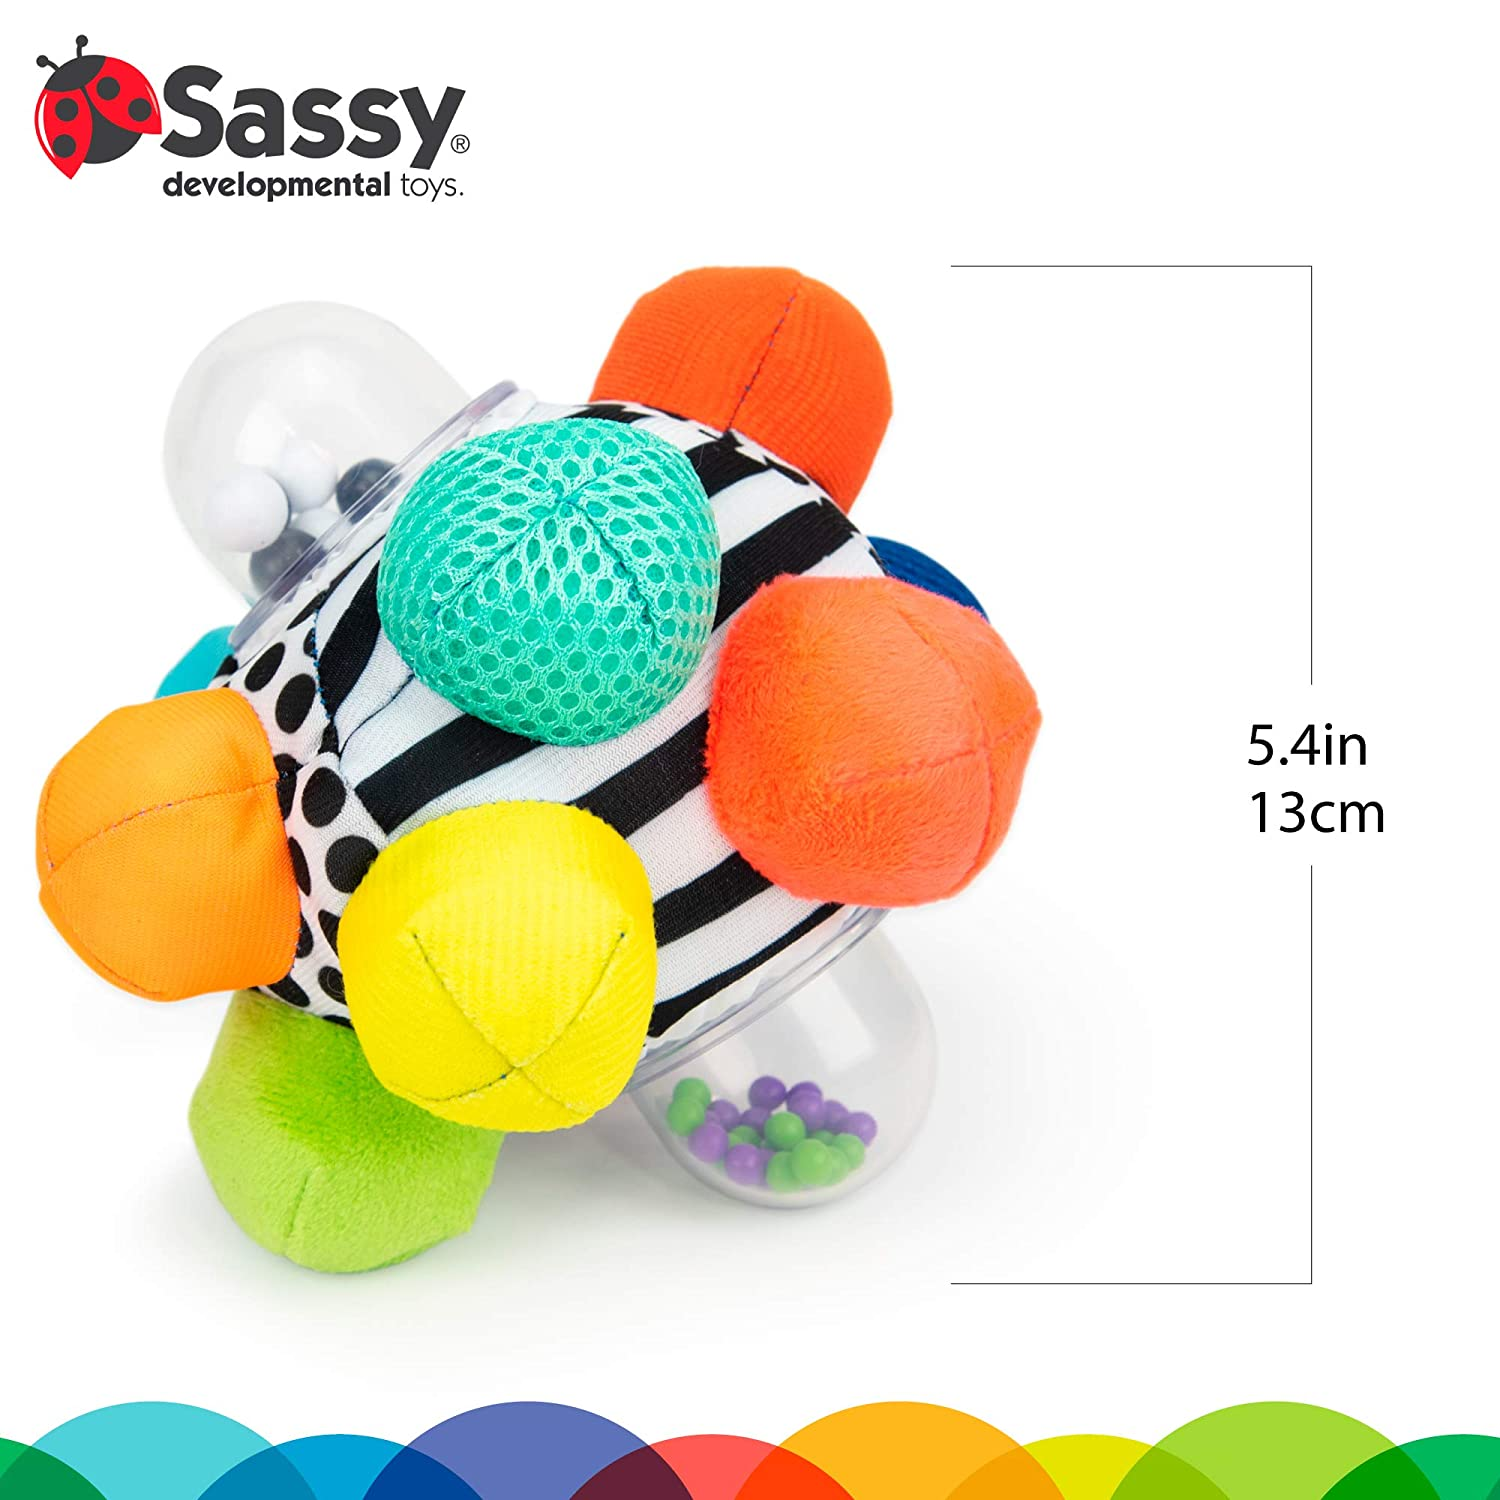 Sassy Developmental Bumpy Ball   Easy to Grasp Bumps Help Develop Motor Skills   for Ages 6 Months and Up   Colors May Vary : Baby Toy Balls : Baby